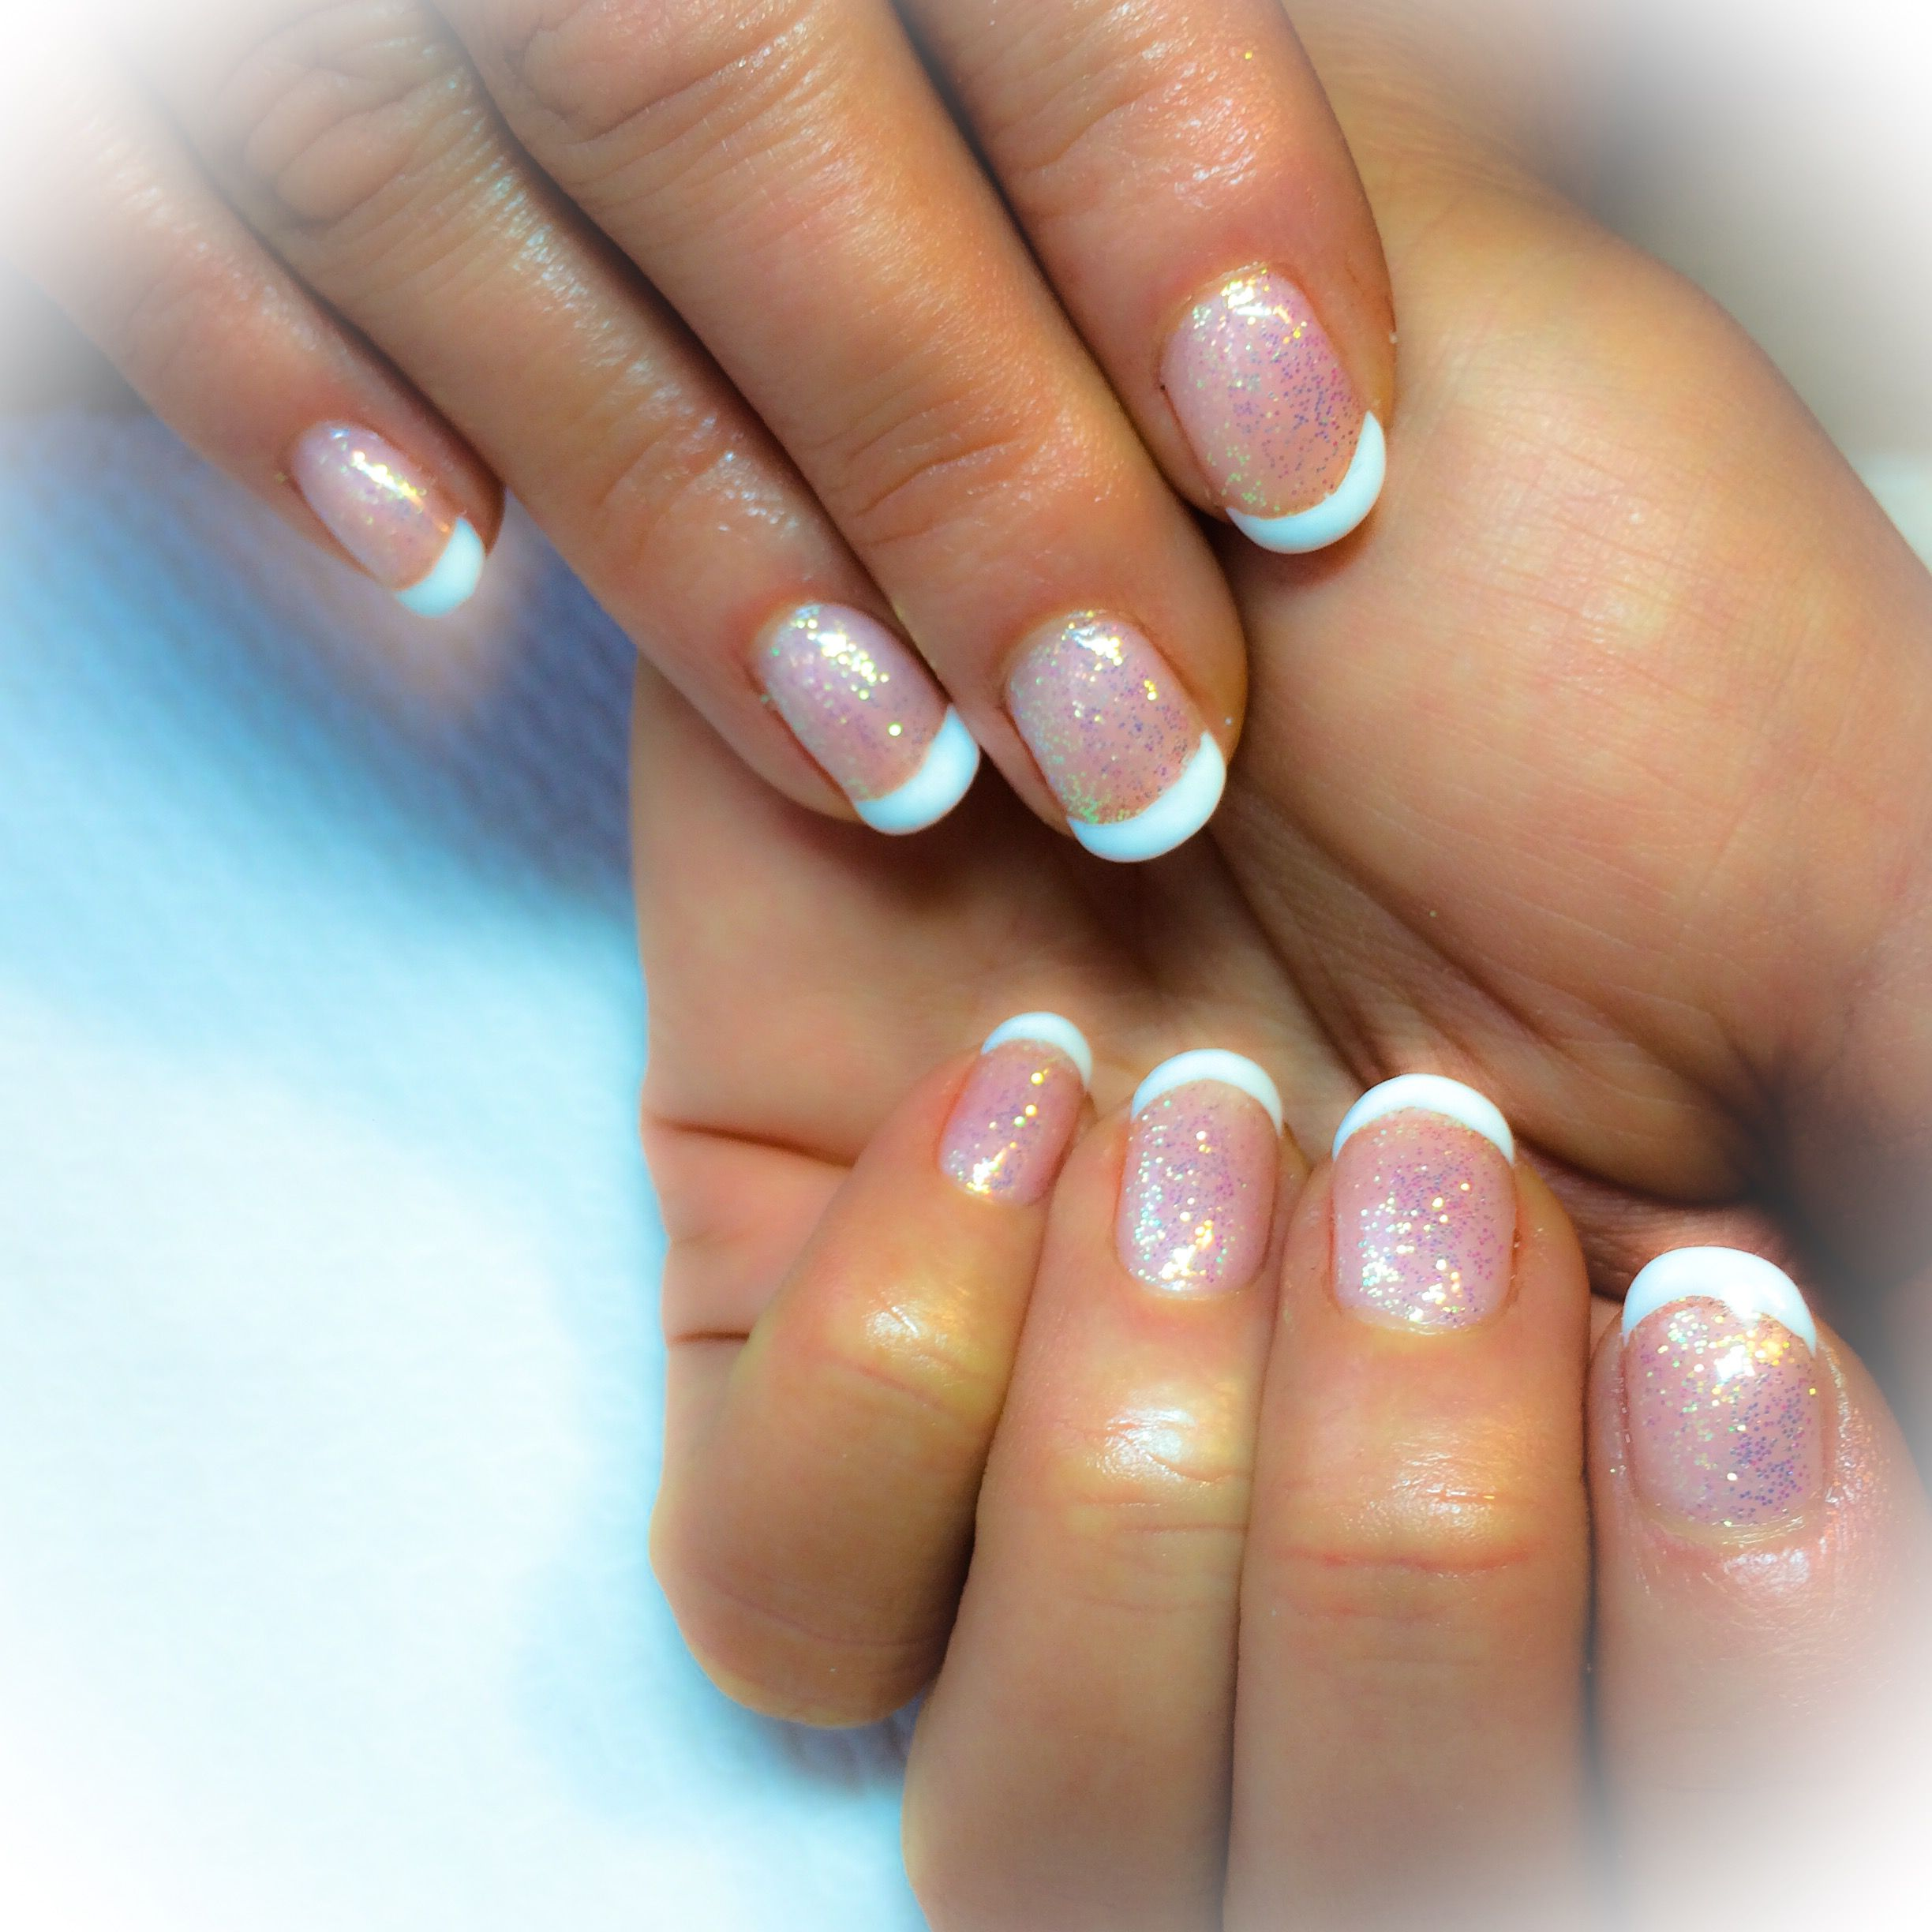 Cnd Shellac Clearly pink and cream puff french manicure with lecente ...